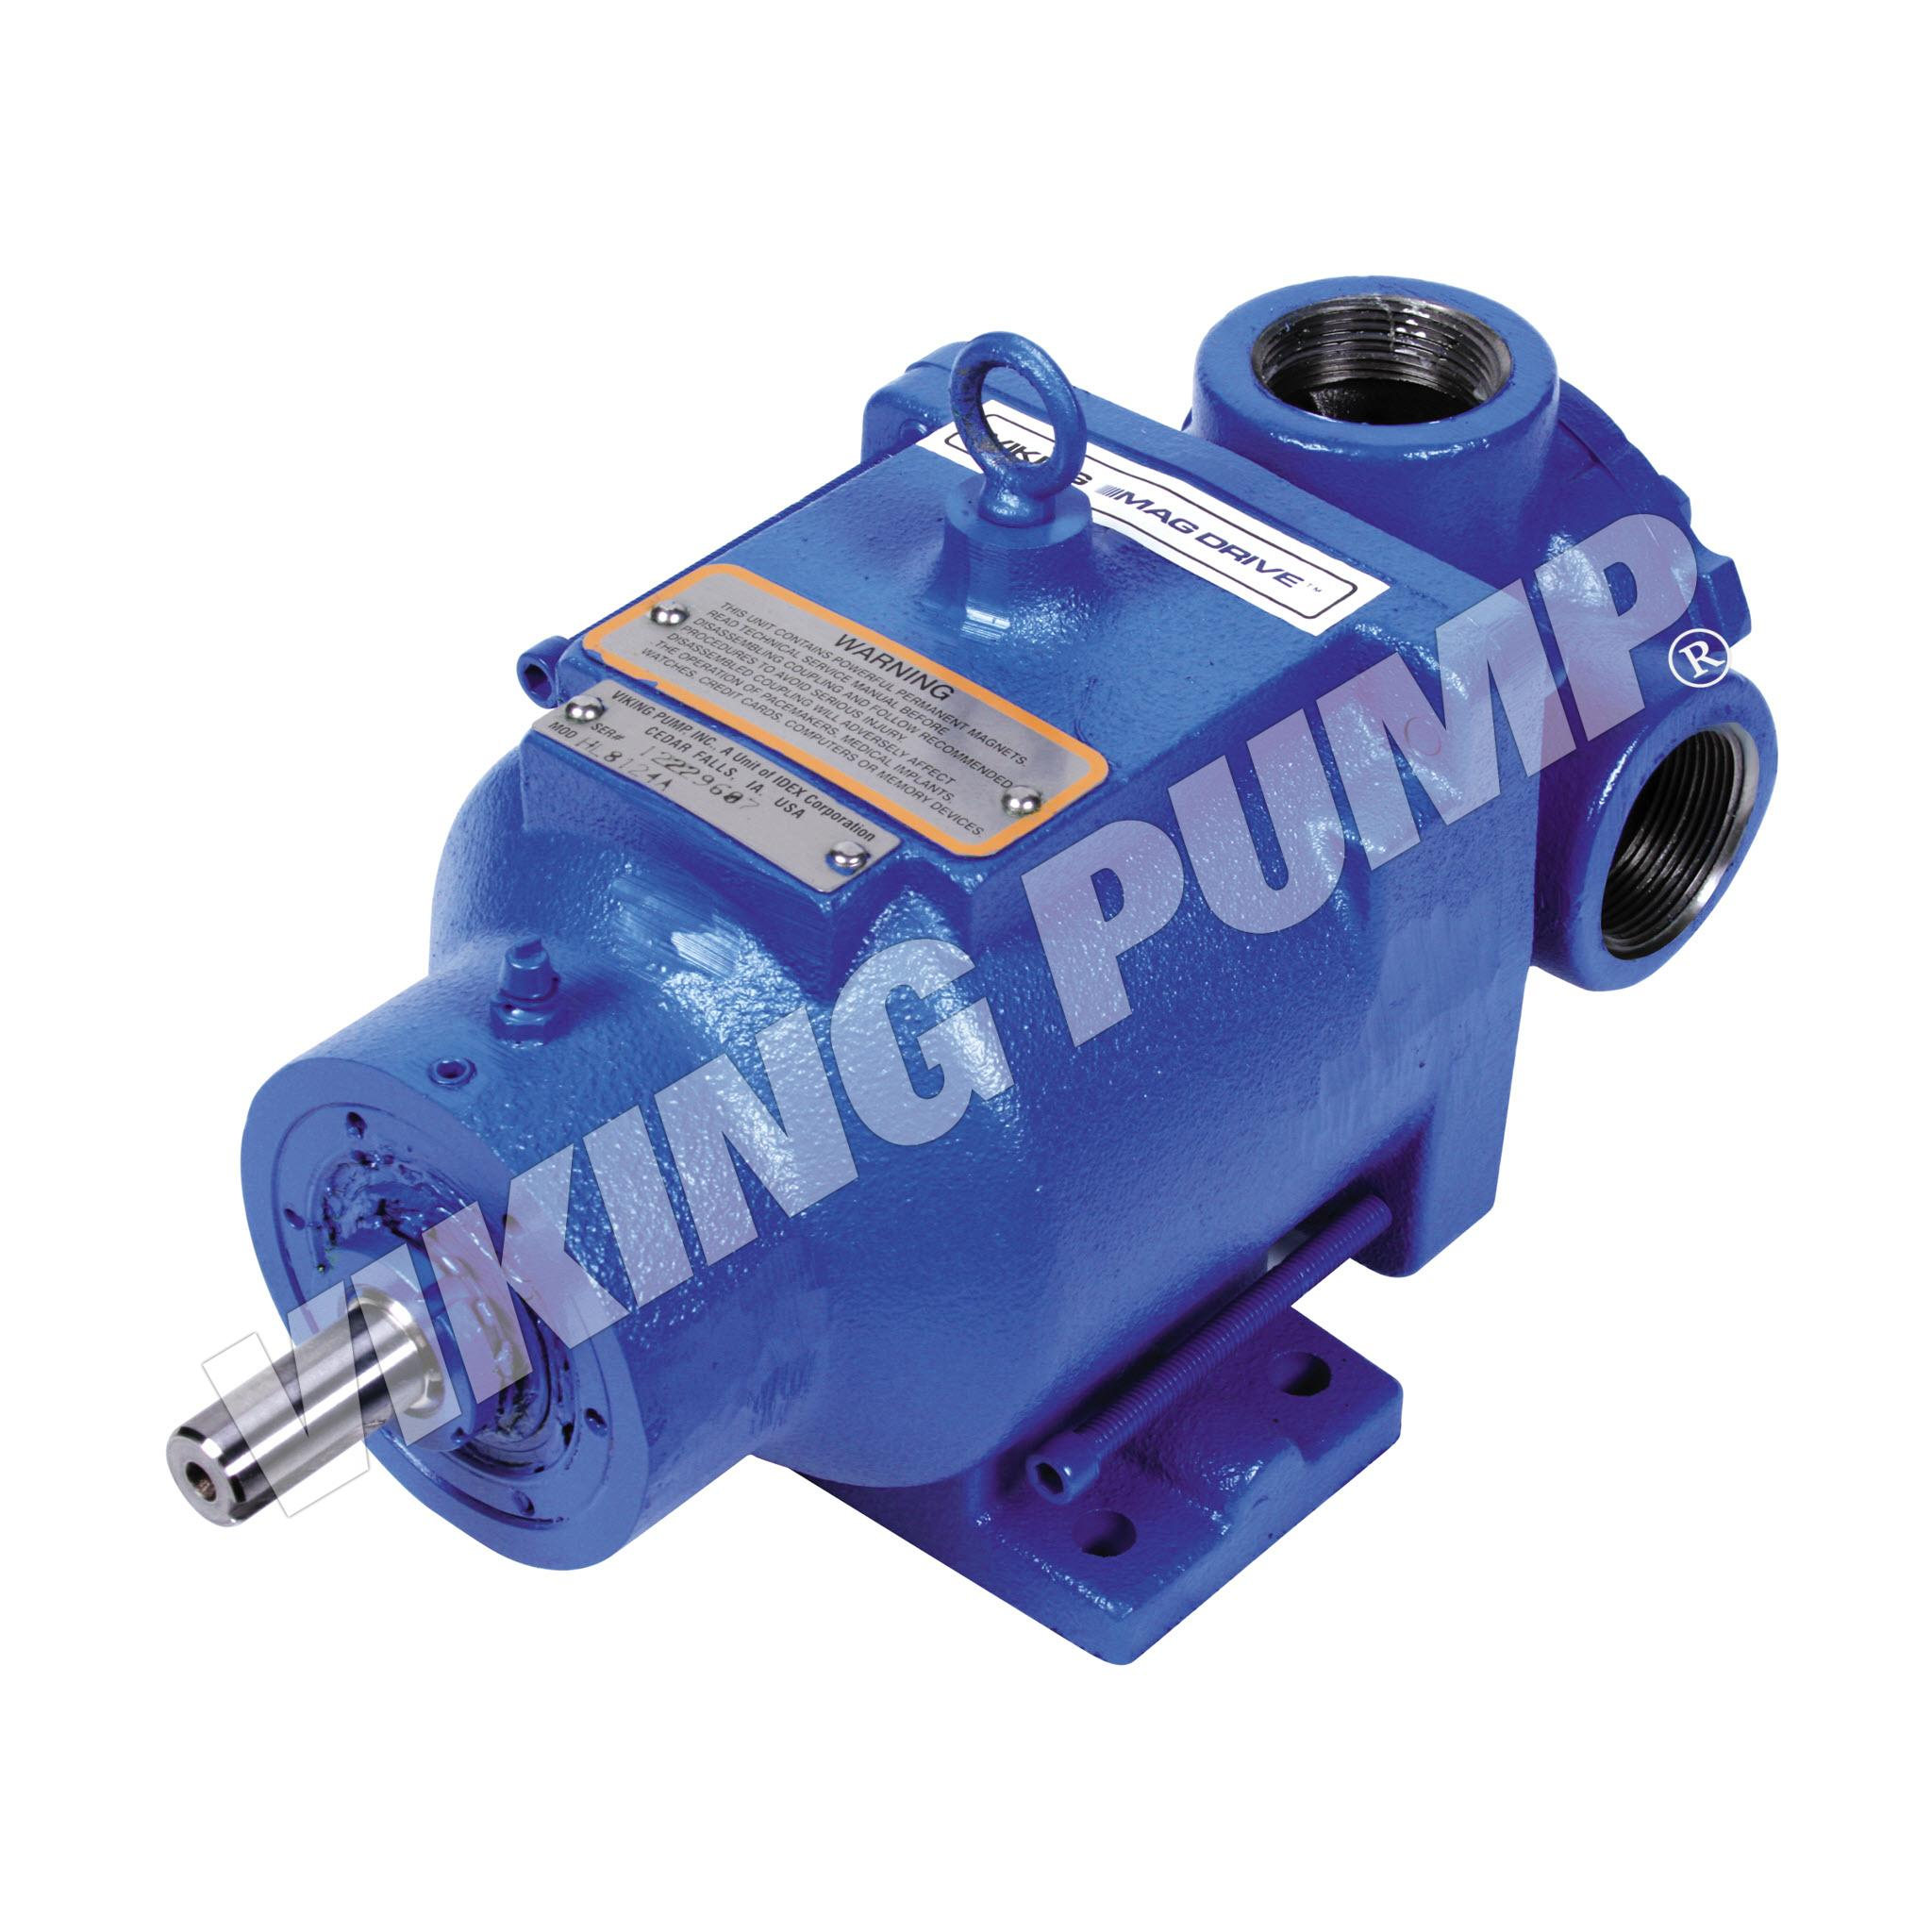 Model HL8124A, Foot Mounted, Mag Drive, Less Relief Valve Pump